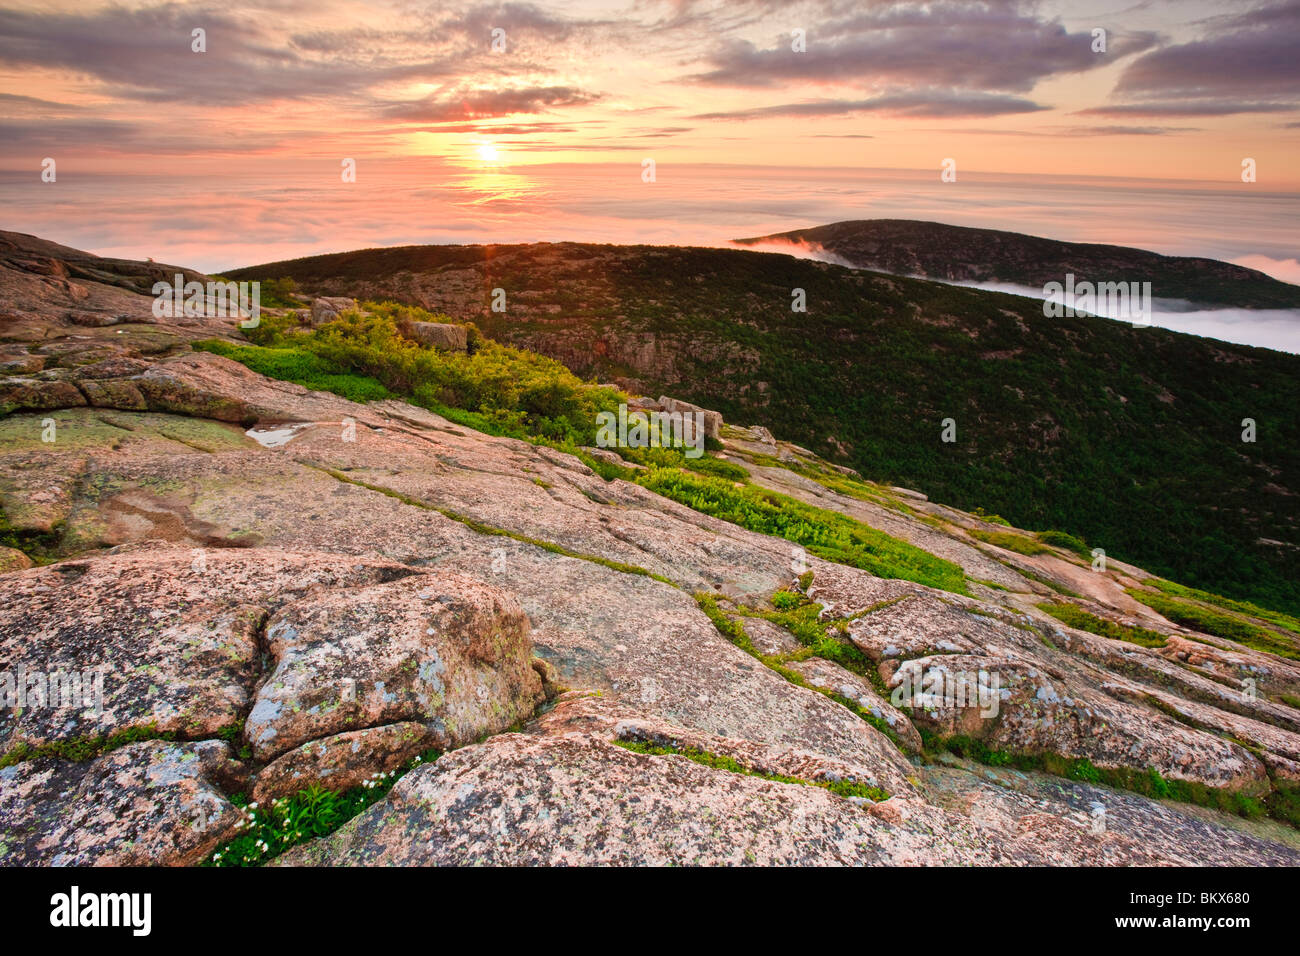 The sun rises above the fog as seen from the summit of Cadillac Mountain in Maine's Acadia National Park. - Stock Image